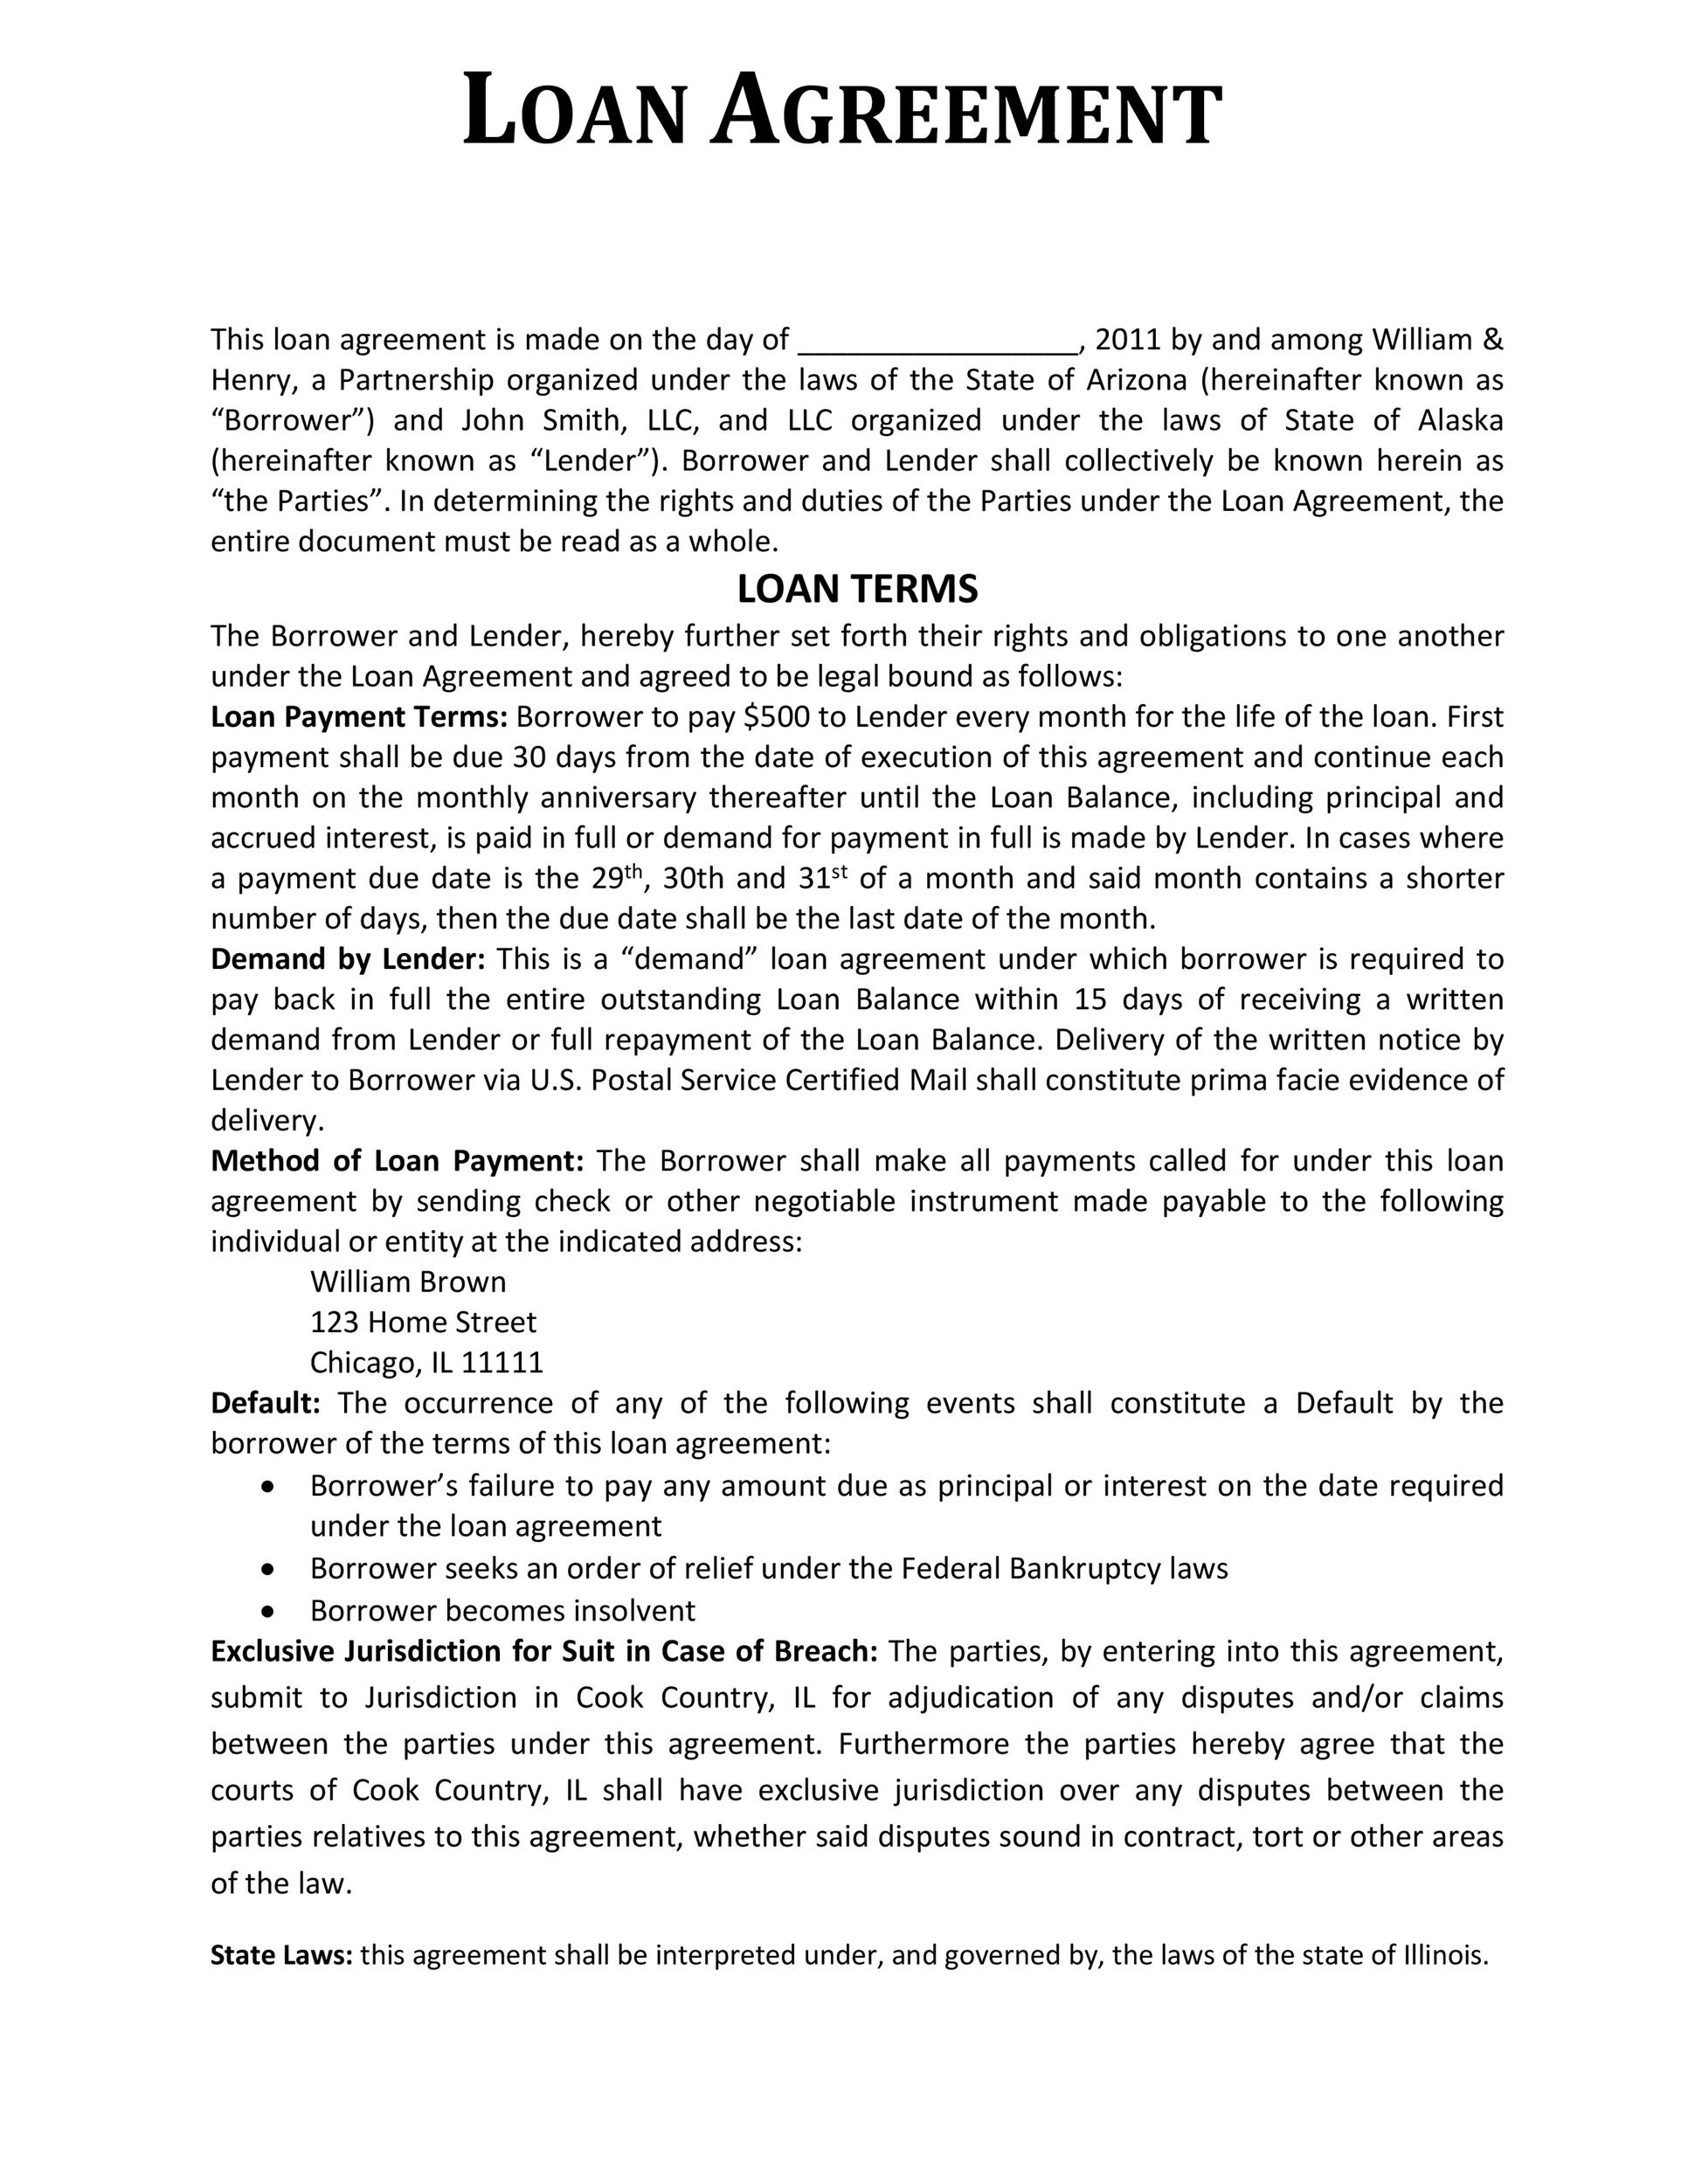 Free loan agreement template 09